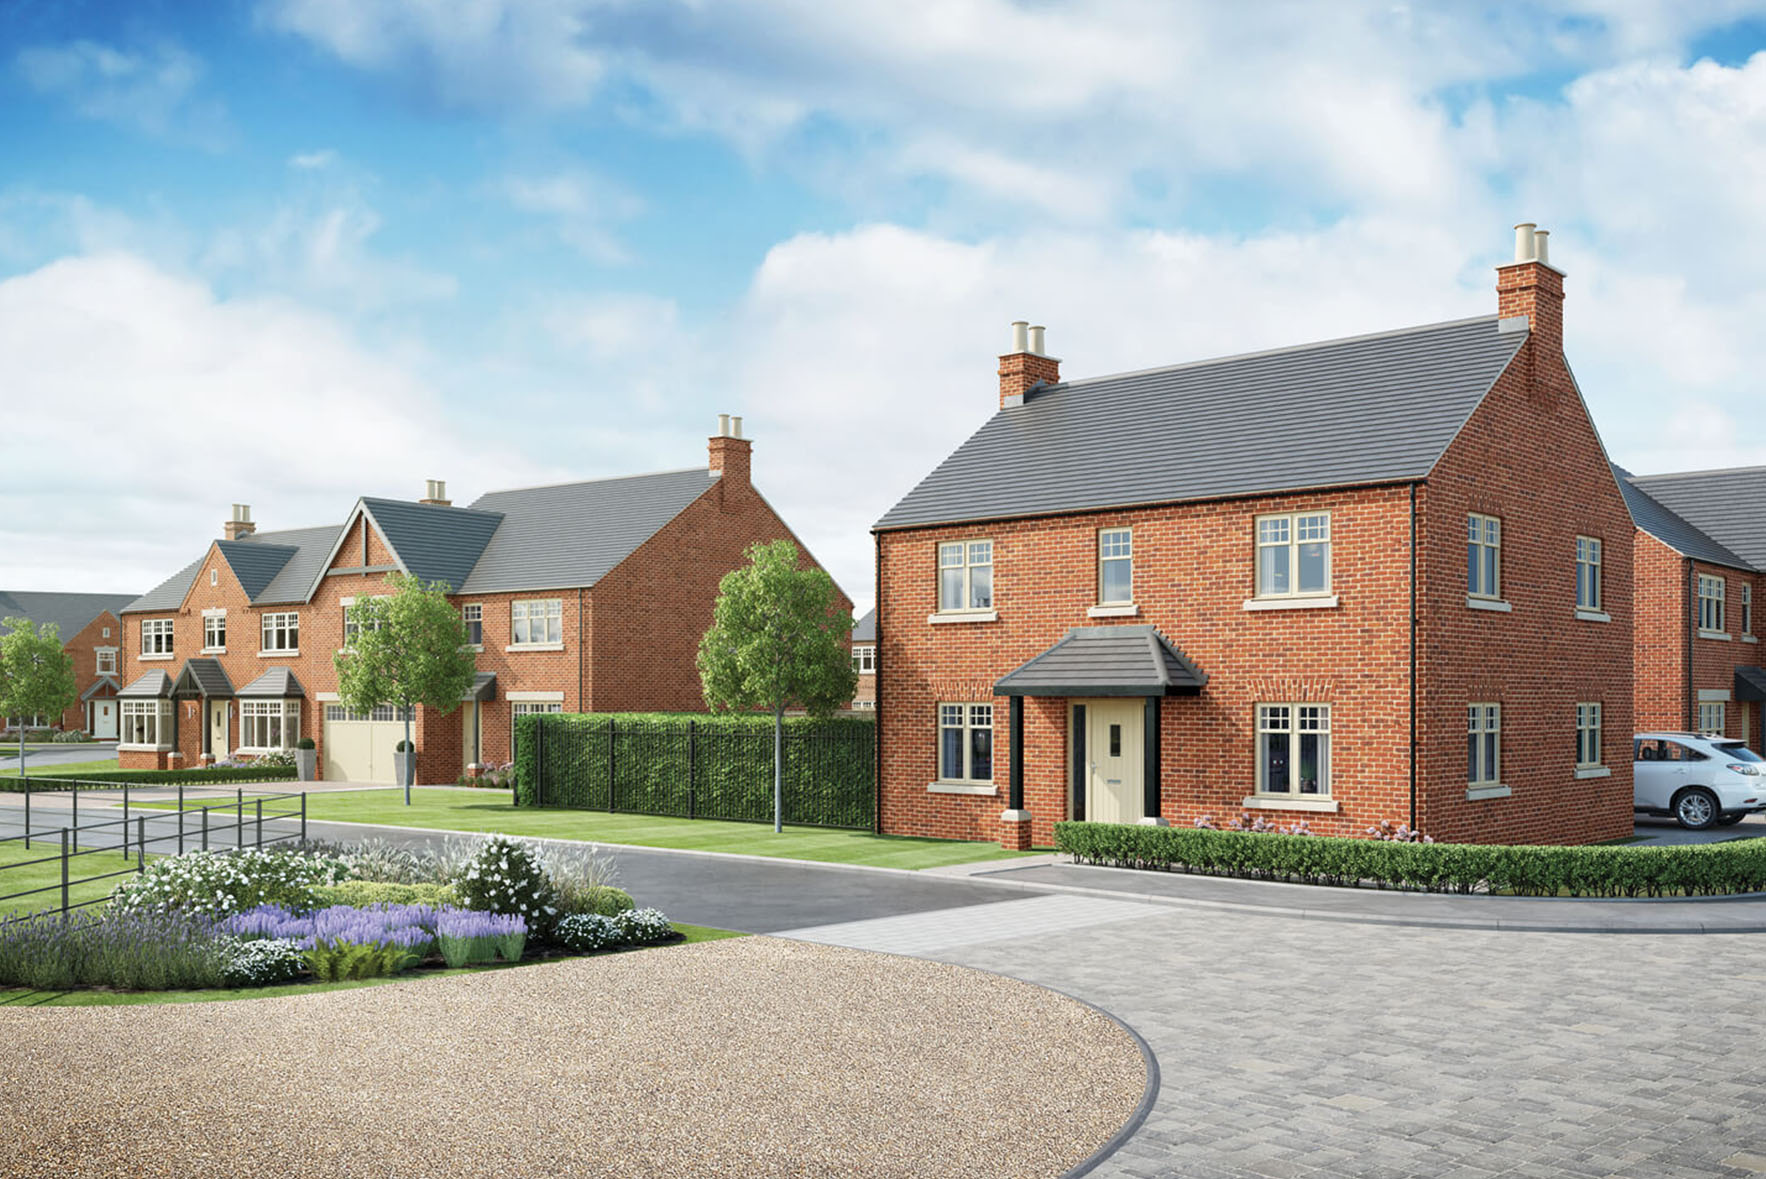 Residential development project by Duchy Homes